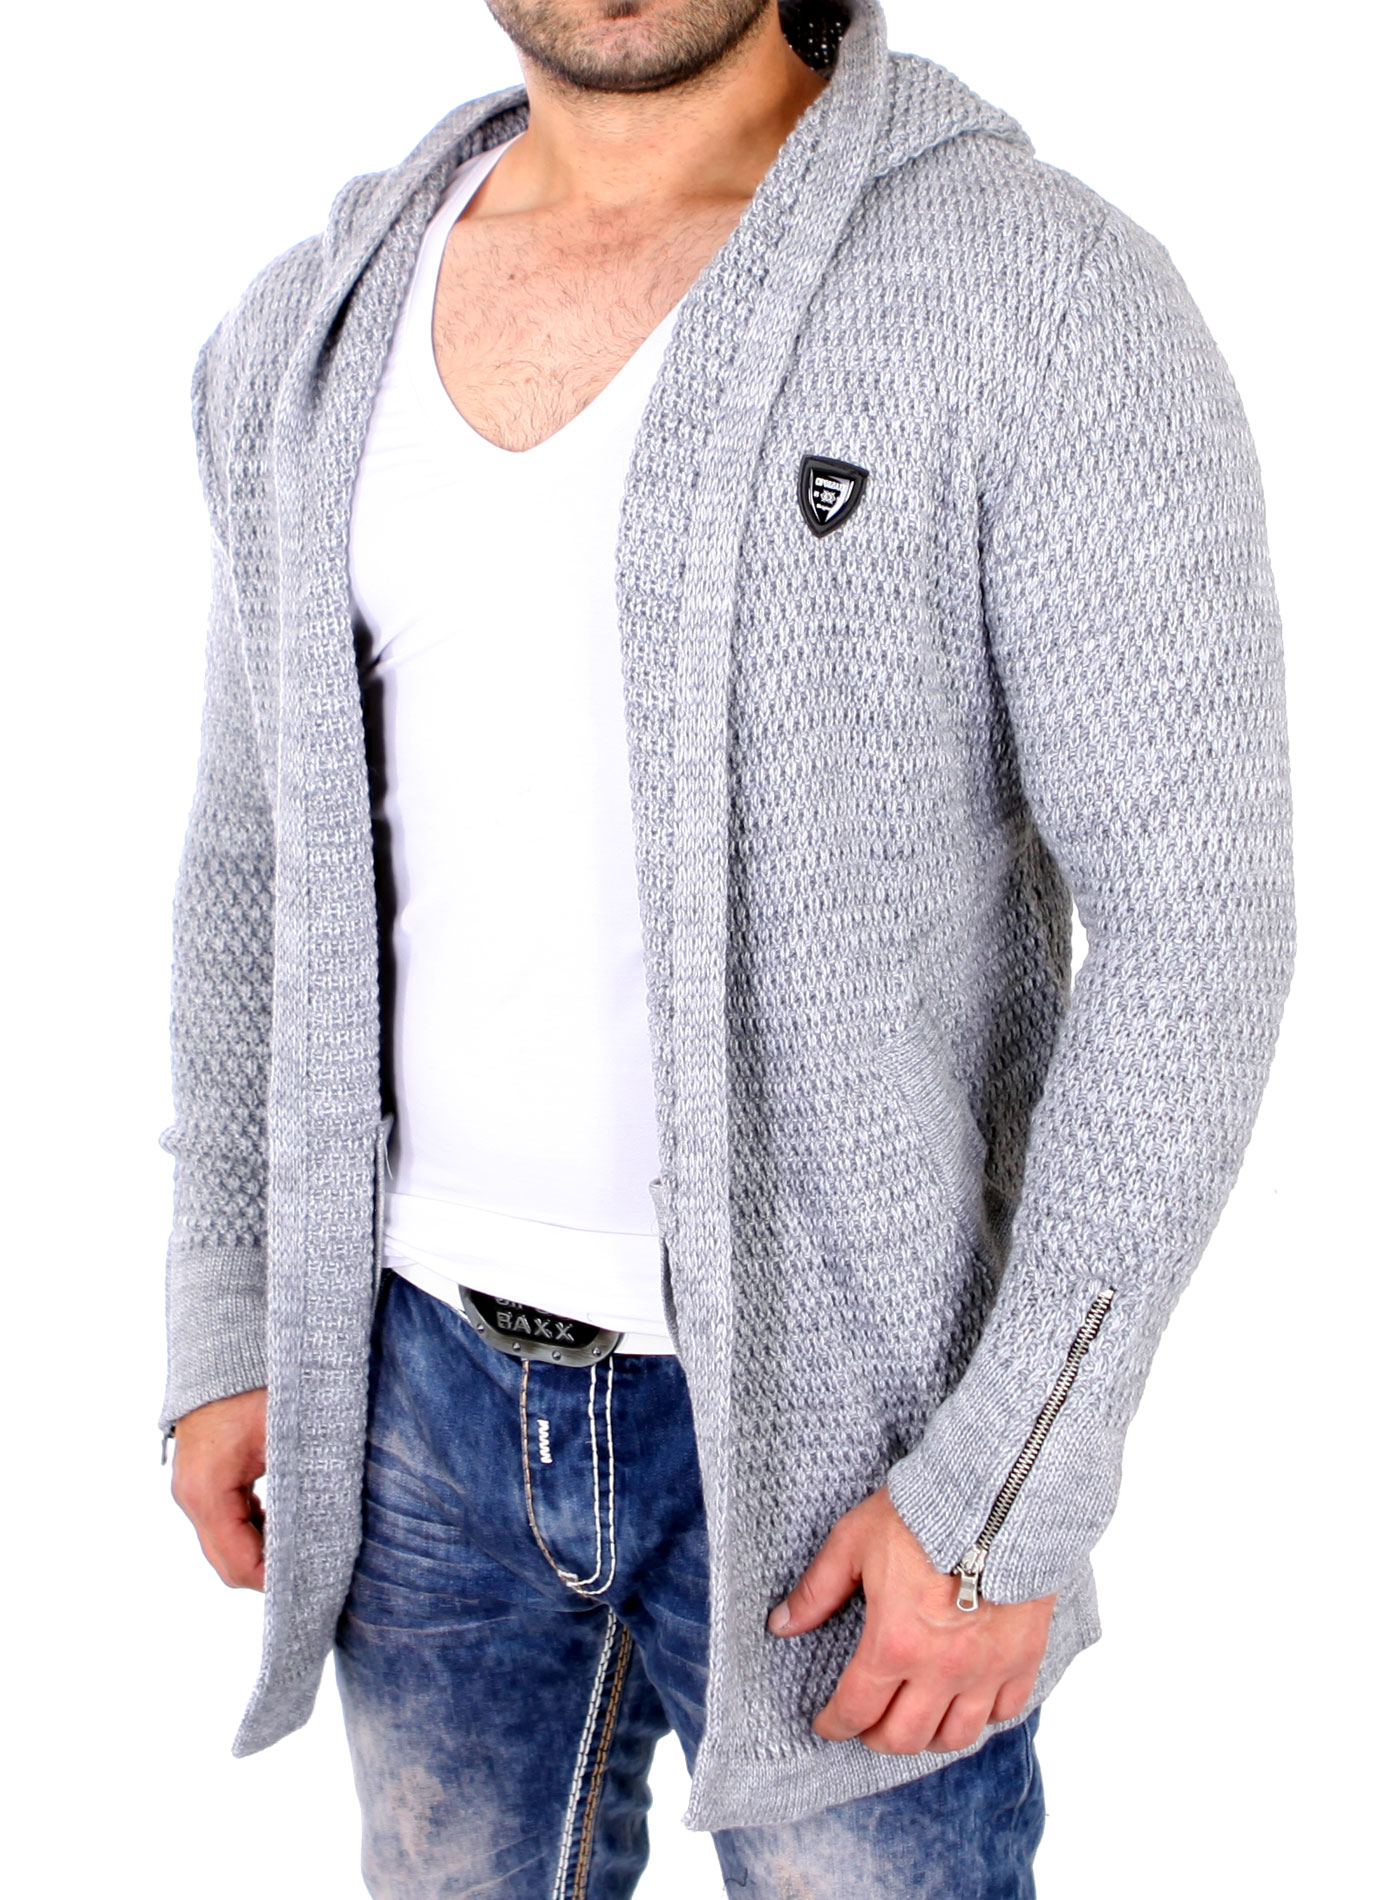 cipo baxx herren weste grob strick jacke v neck cardigan lang mit kapuze c 103 ebay. Black Bedroom Furniture Sets. Home Design Ideas